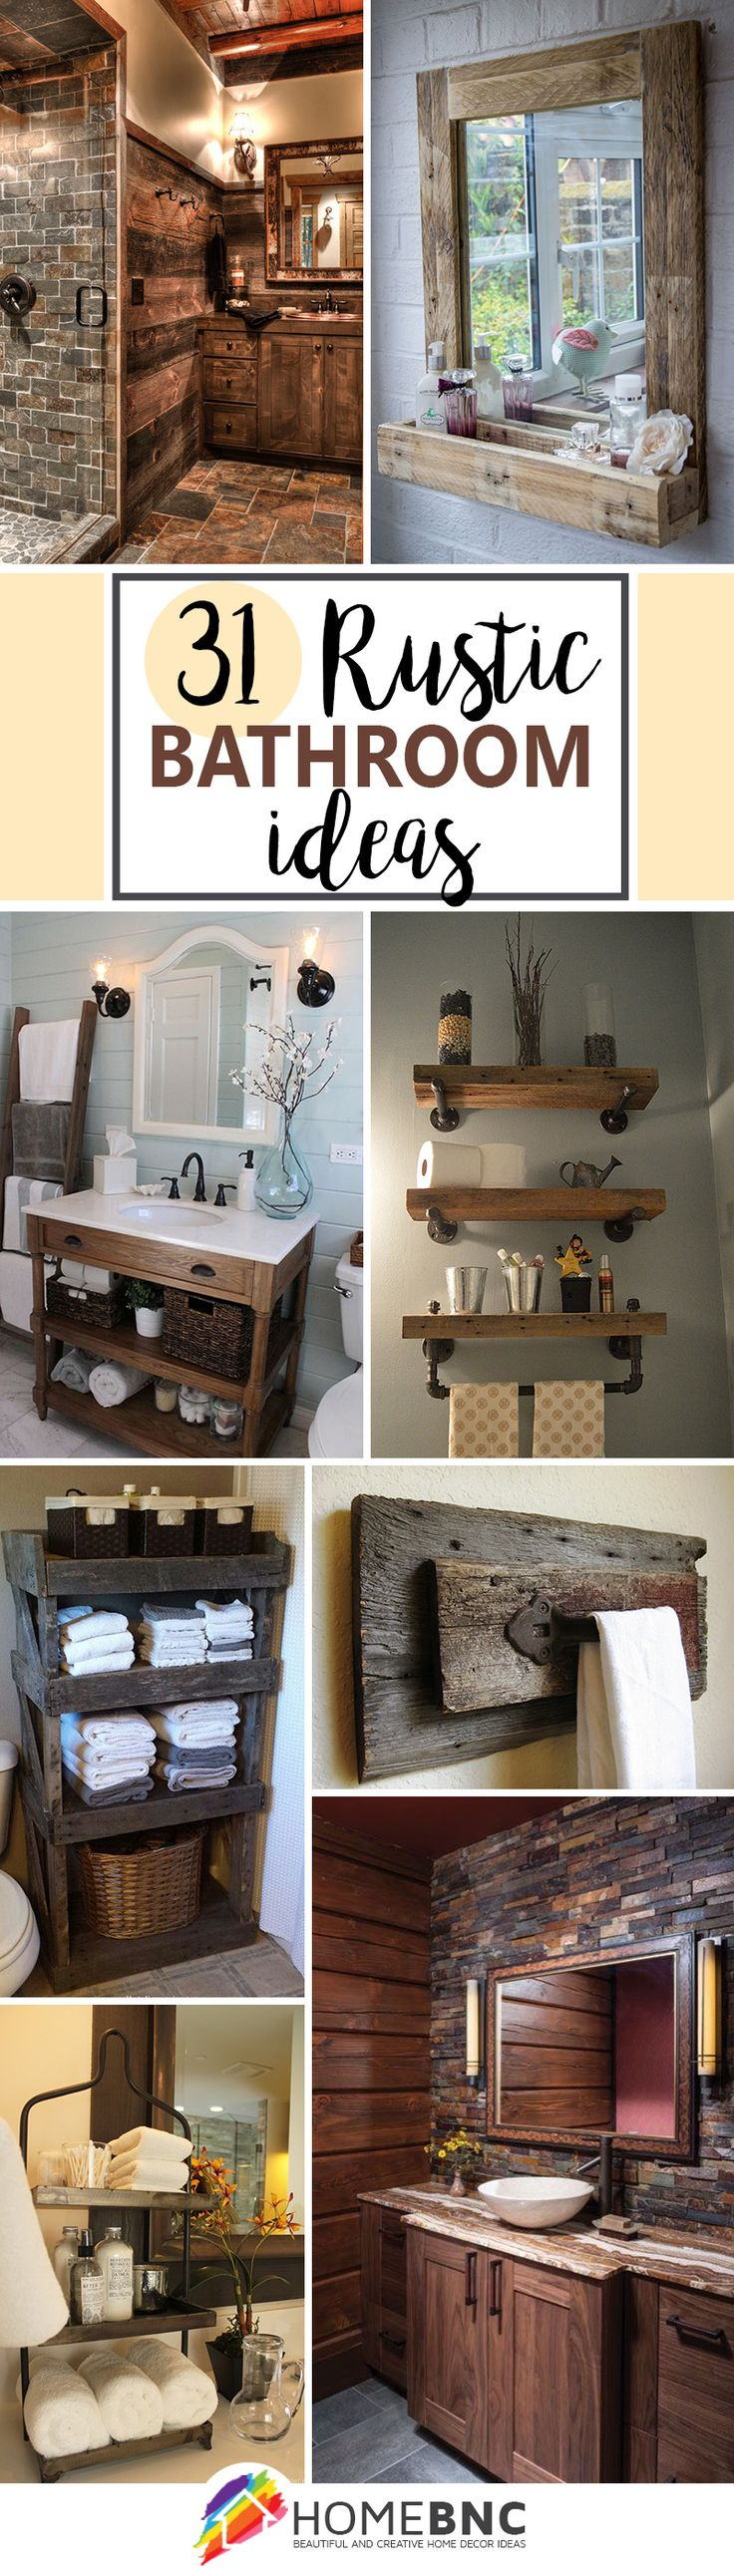 Diy bathroom decor pinterest - 31 Gorgeous Rustic Bathroom Decor Ideas To Try At Home